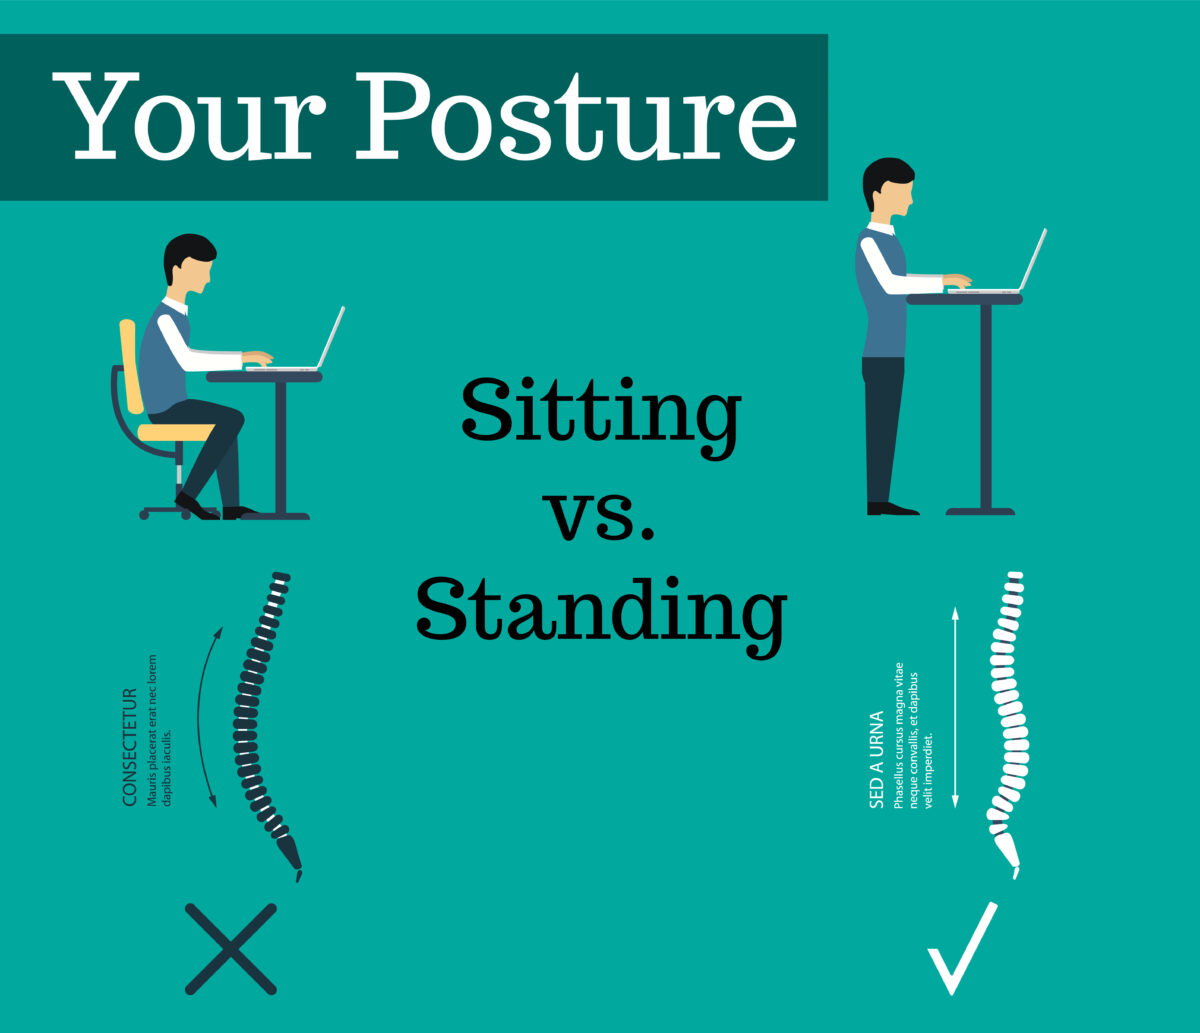 Your posture sitting vs. standing